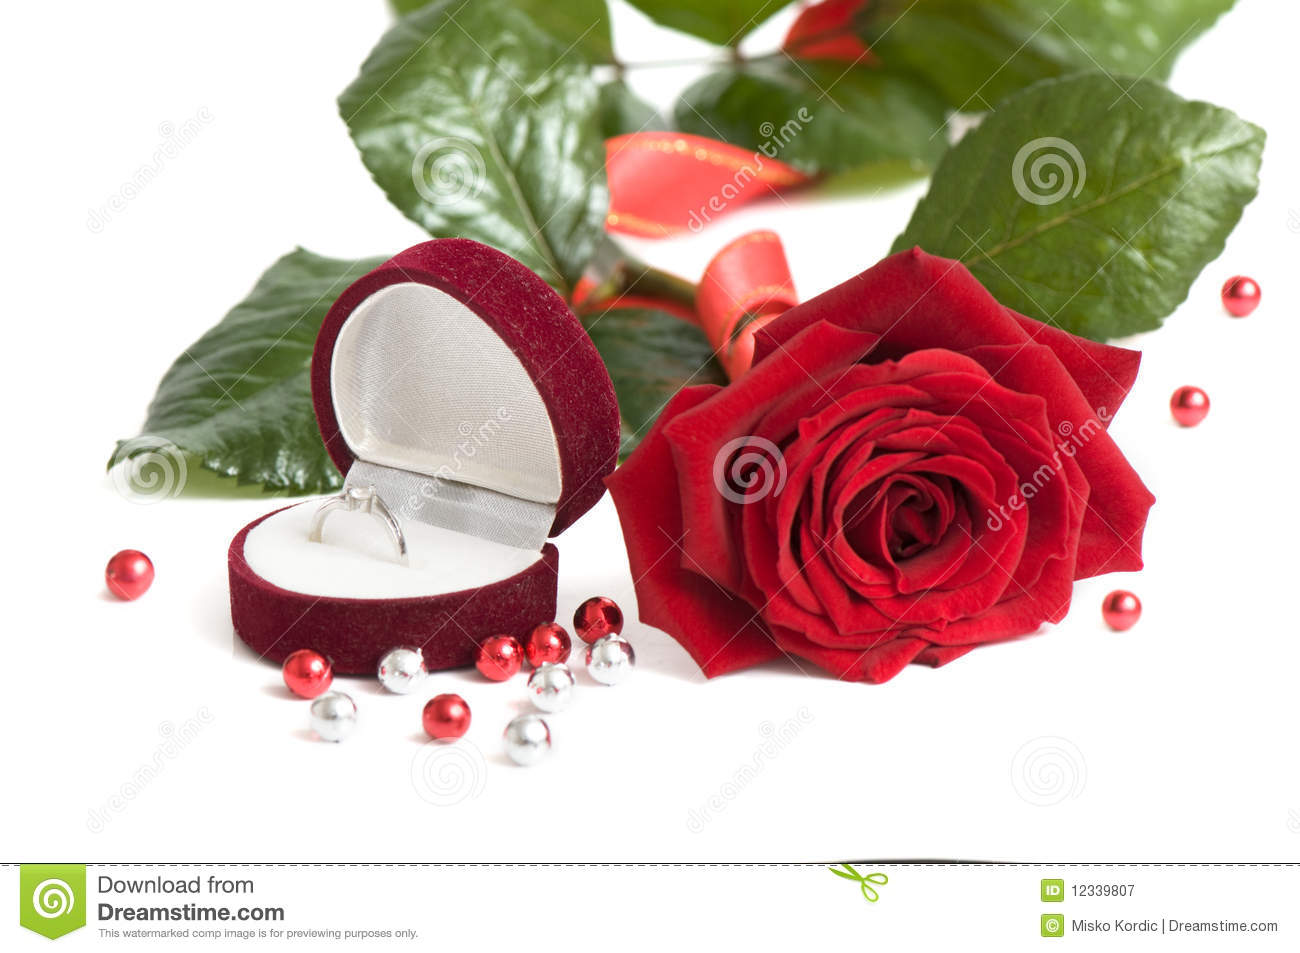 beautiful red rose for day valentine as gift stock photography, Natural flower